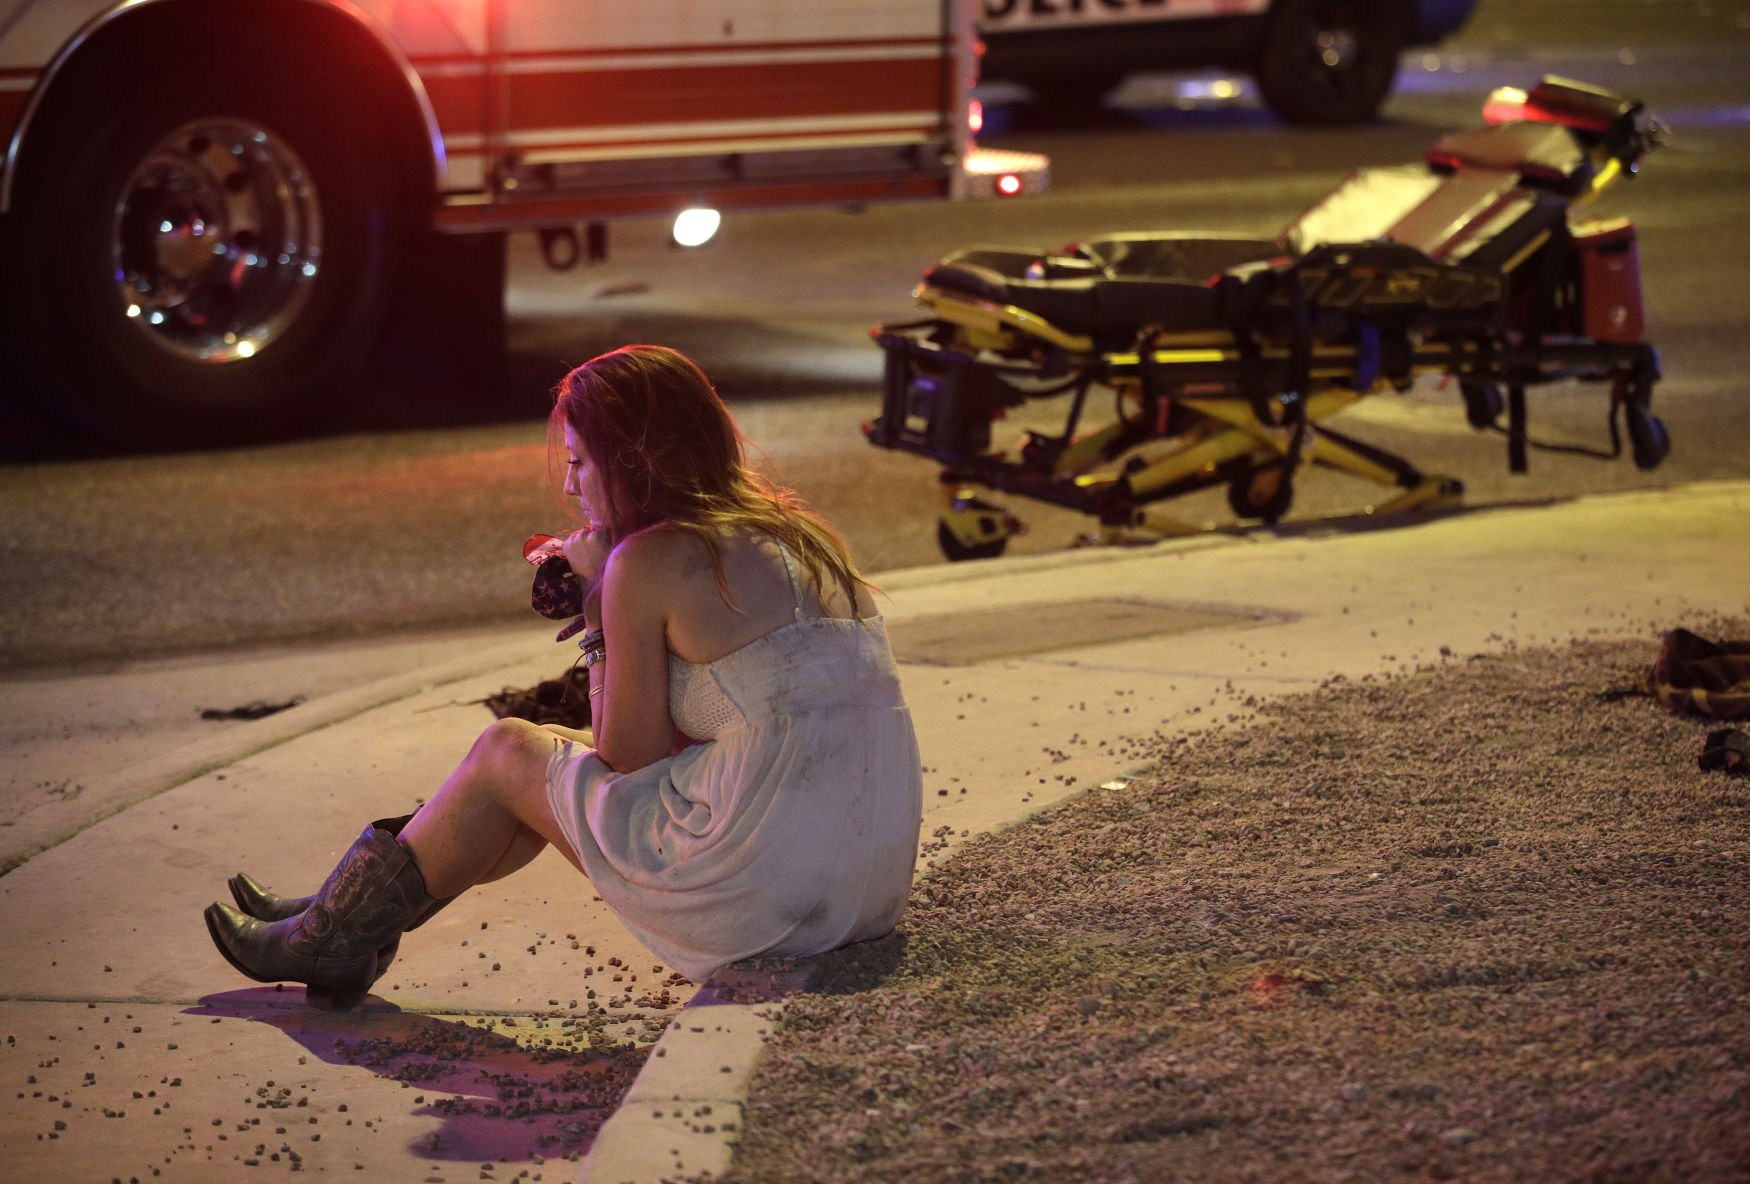 Las Vegas Shooting: Advice For People Looking For Answers